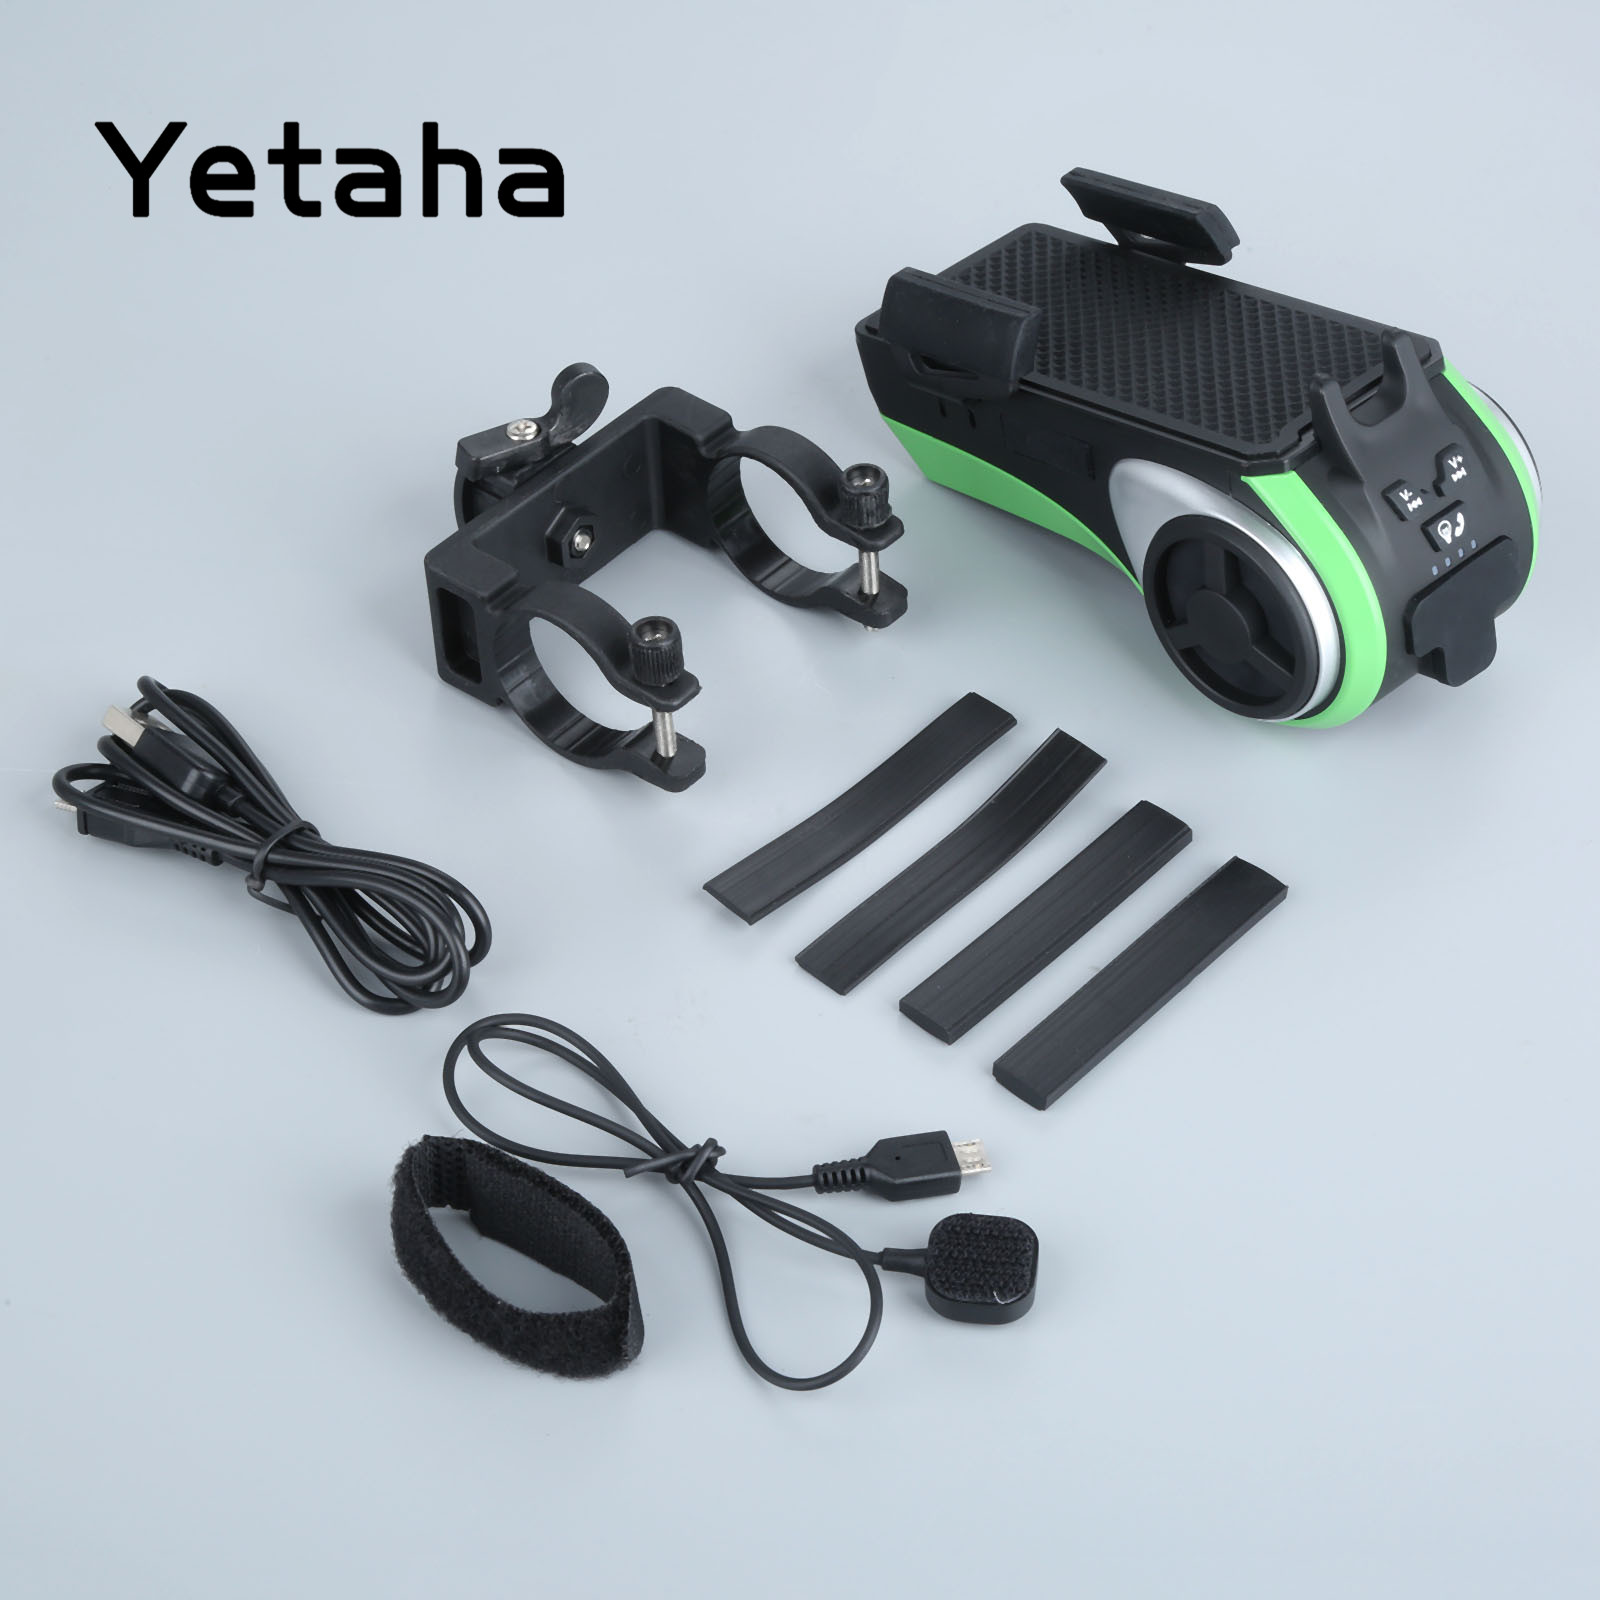 Yetaha Multifunction MP3 Music Player Motorcycle Audio Waterproof Moto Speakers With Lights Power Bank Mobile Phone Holder